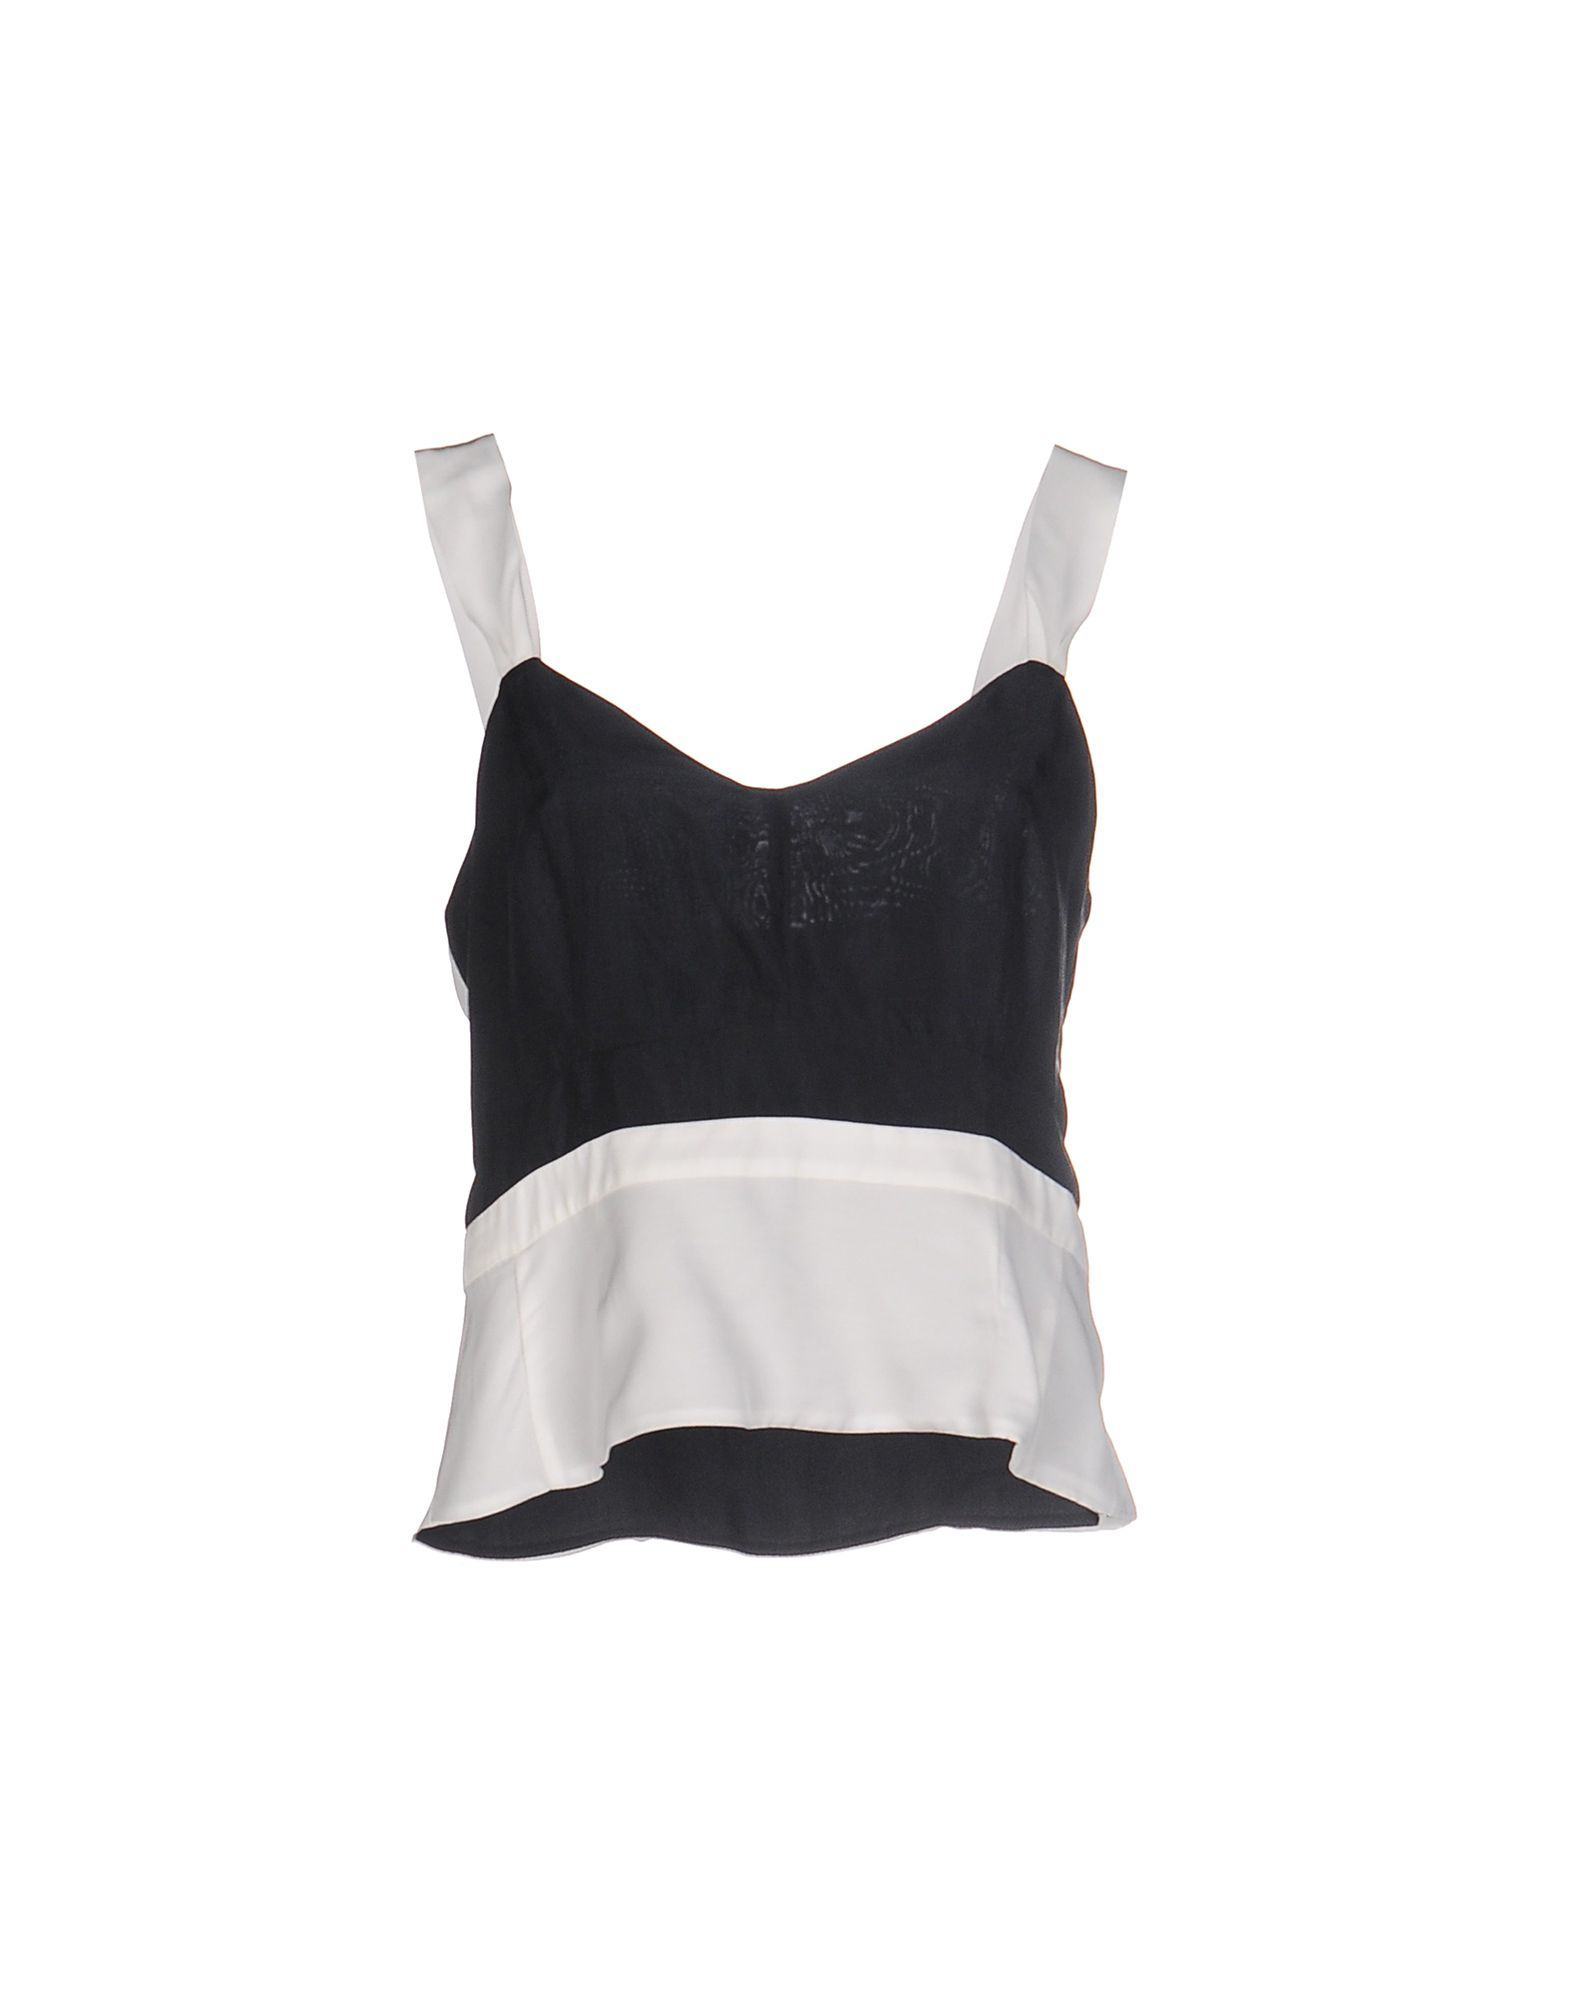 SEE BY CHLOÉ Tops